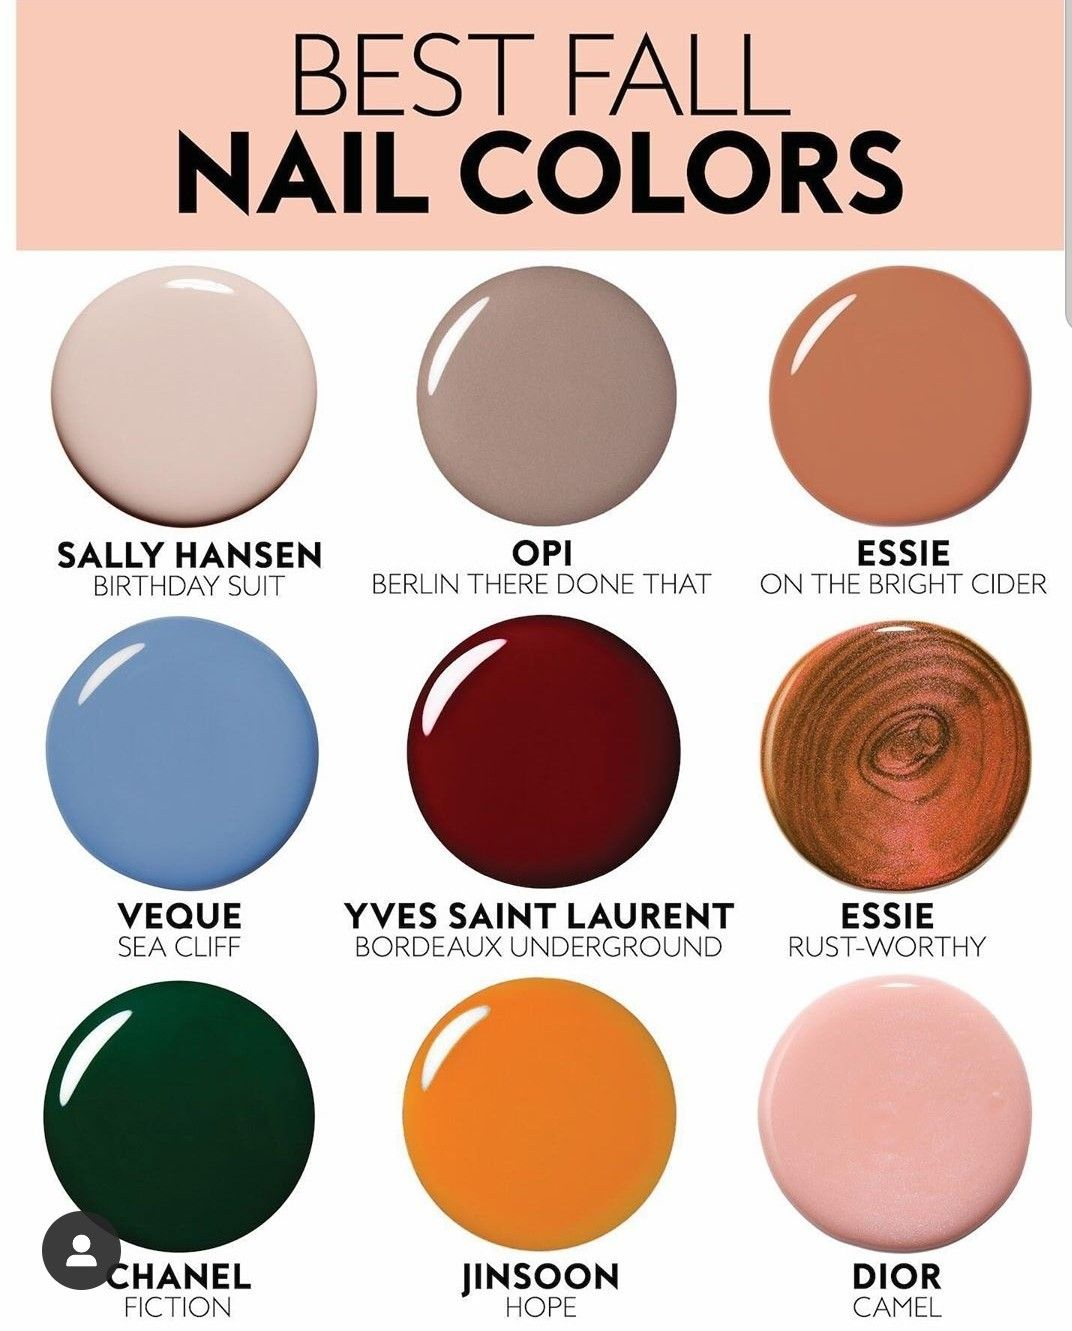 Nail Colors Fall 2019 Trend Fall Manicure Nail Polish Colors Fall Nail Colors